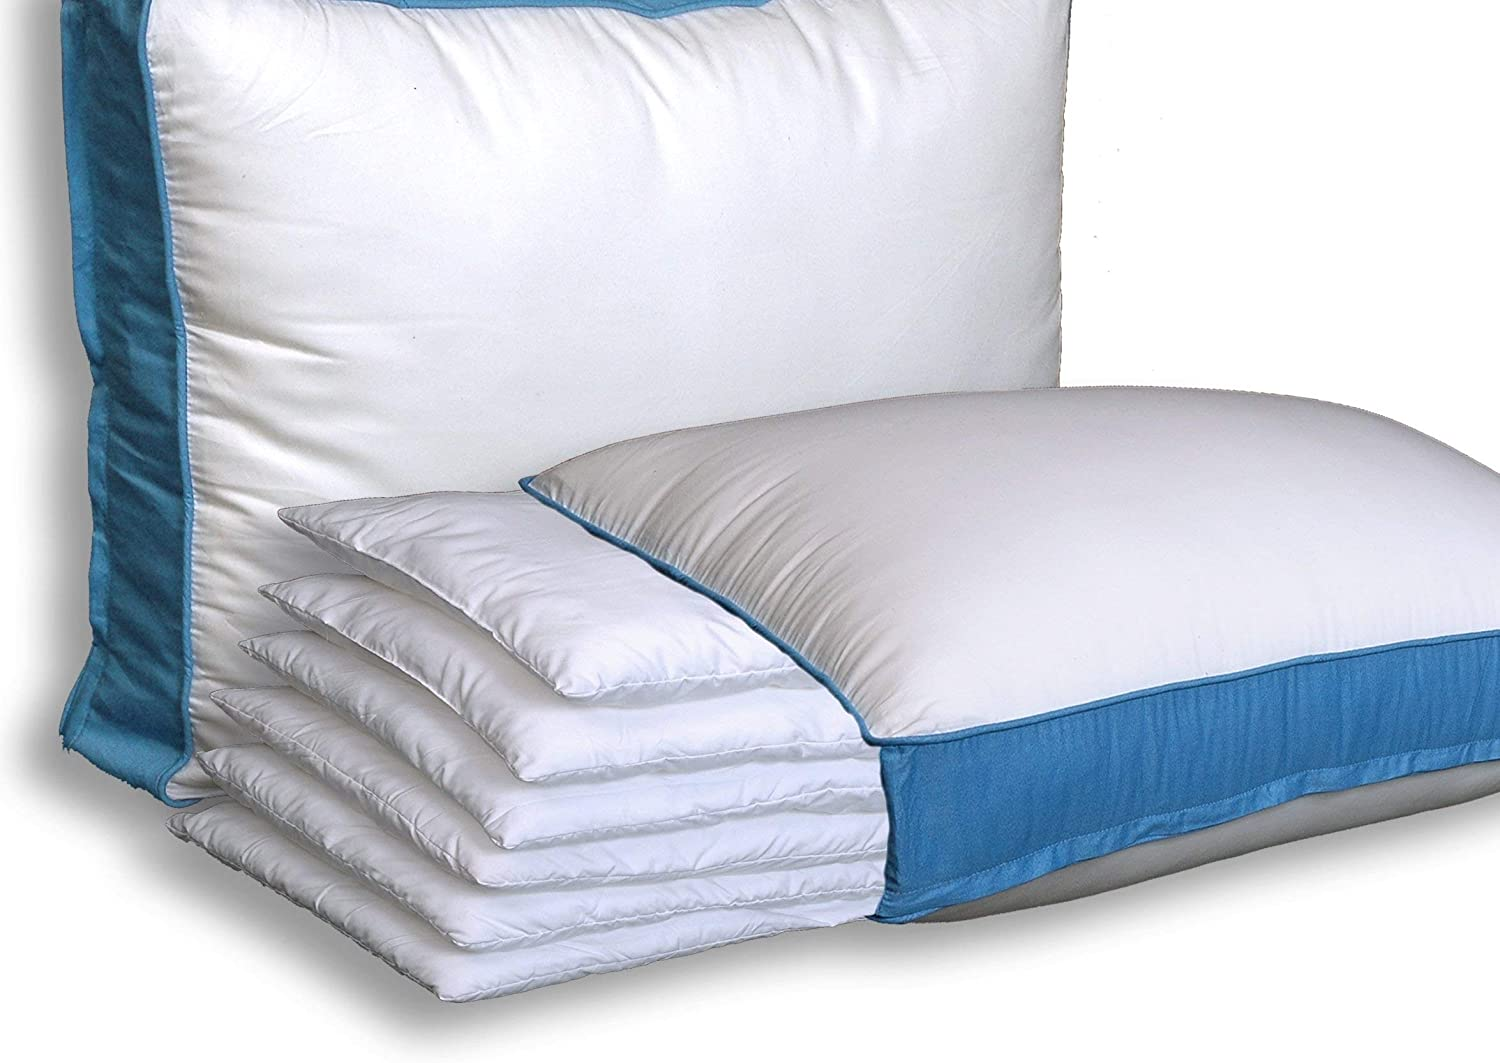 The Adjustable Layer Pillow